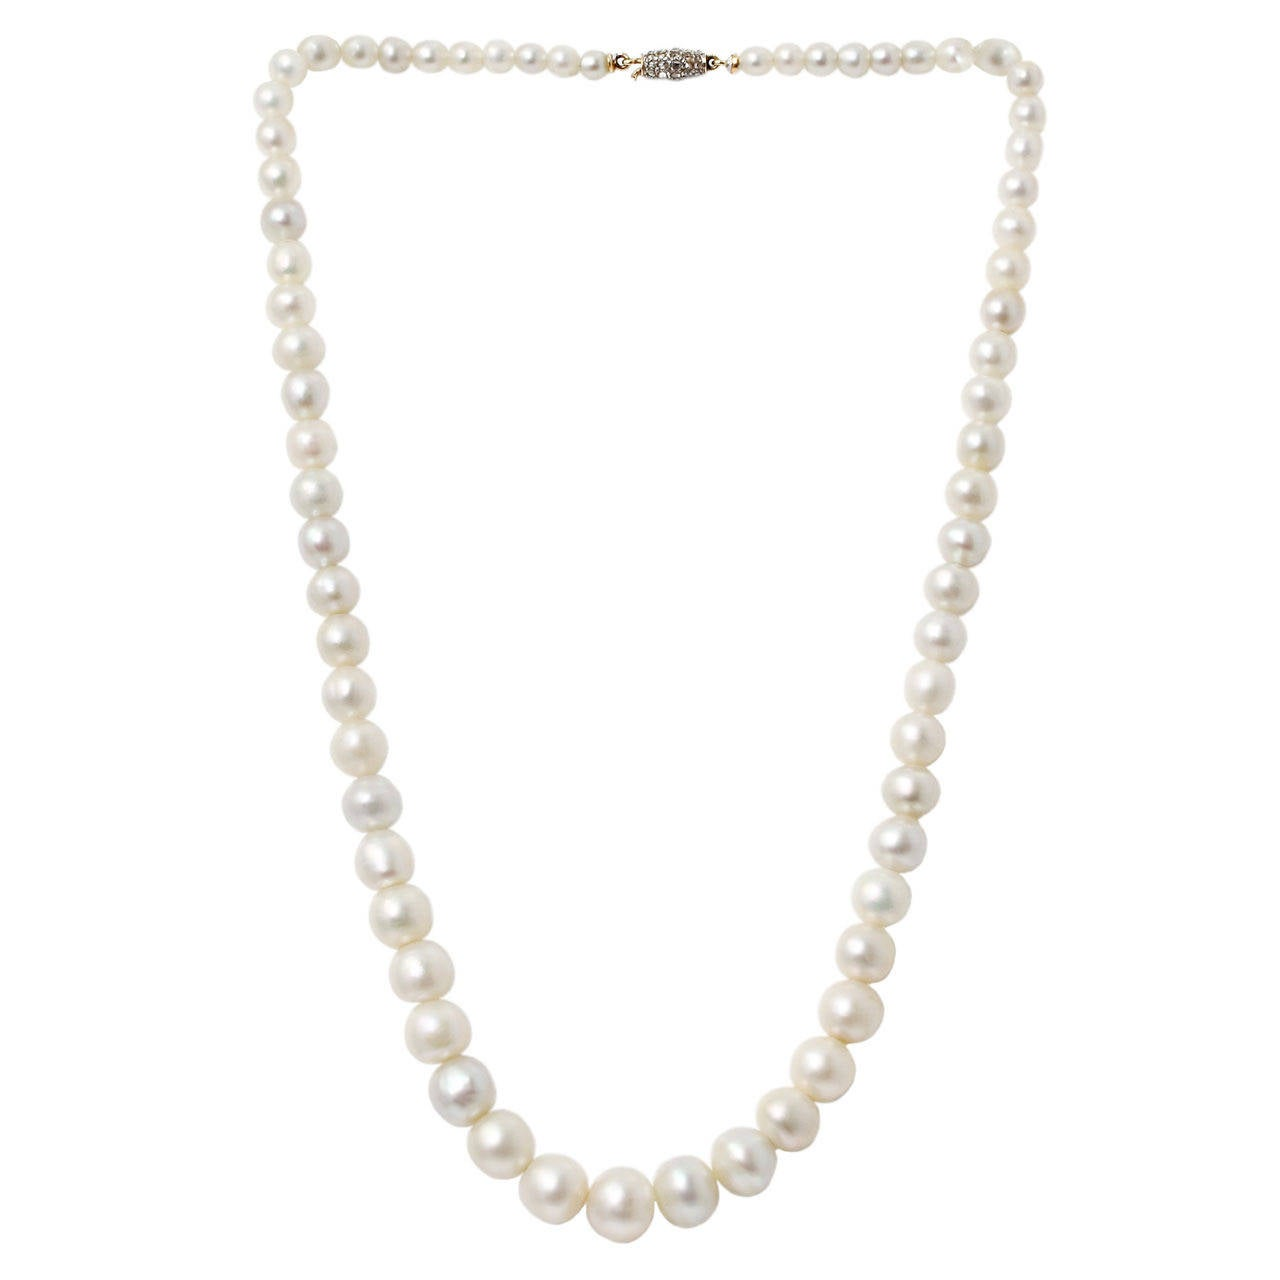 Natural Saltwater Pearl Necklace: A Single Row Natural Saltwater Pearl Necklace For Sale At